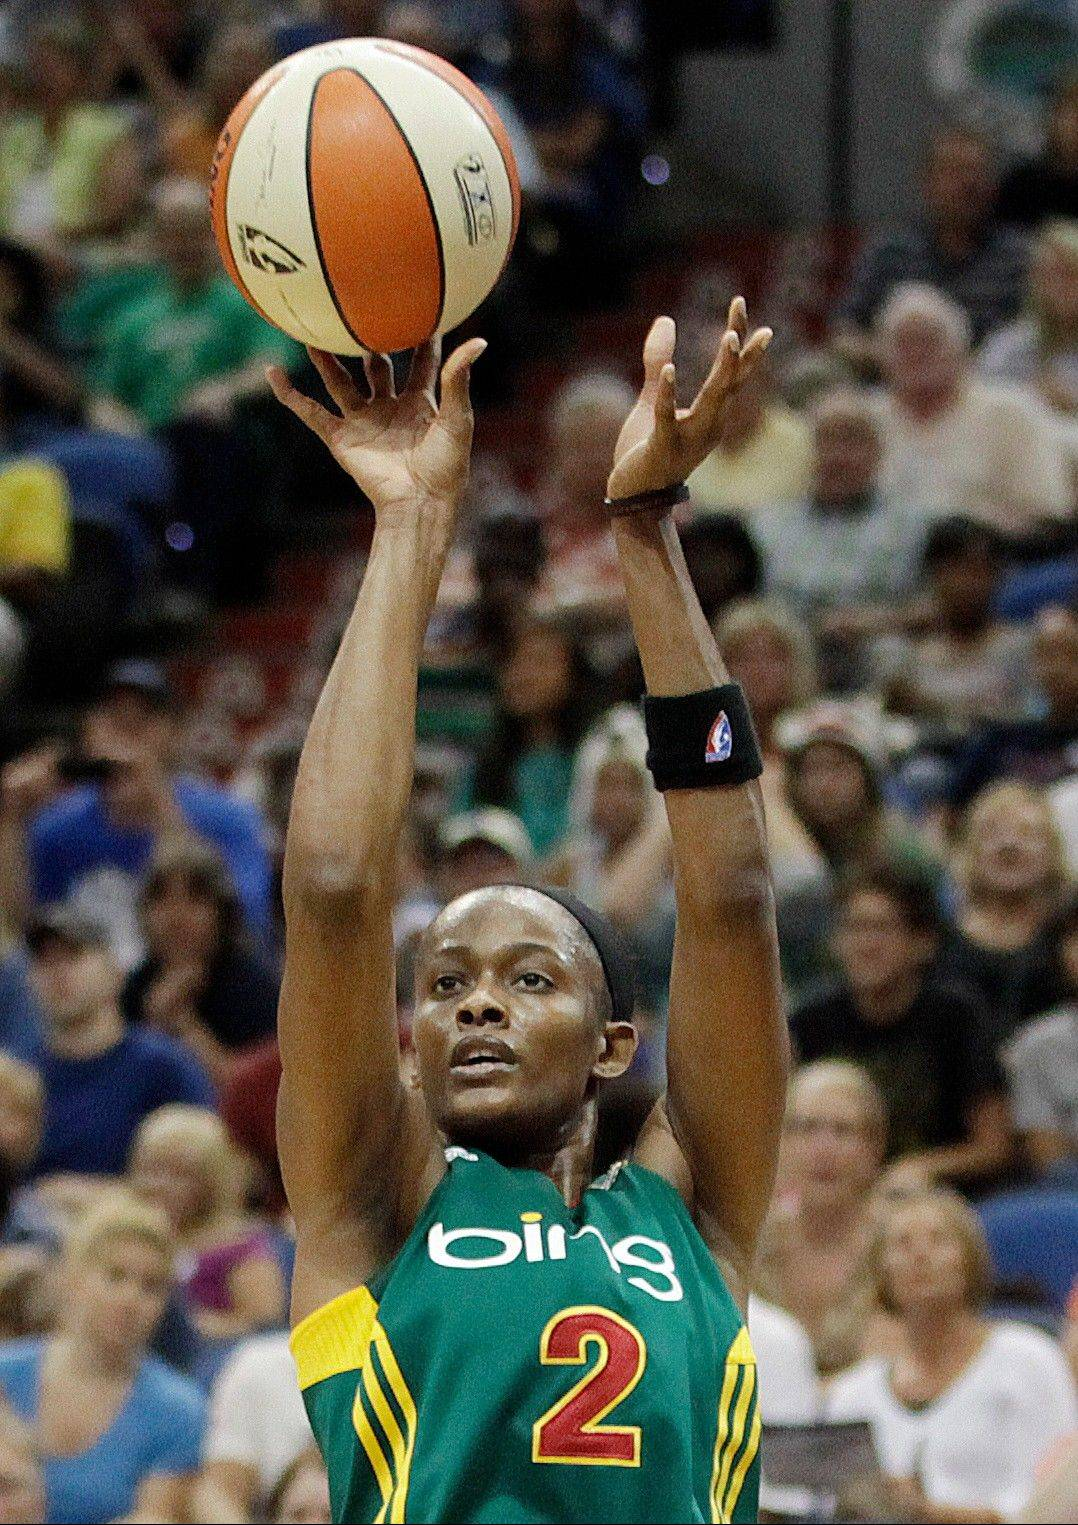 The Sky is hoping that newly acquired Swin Cash will be the player needed to propel the team into the WNBA playoffs.